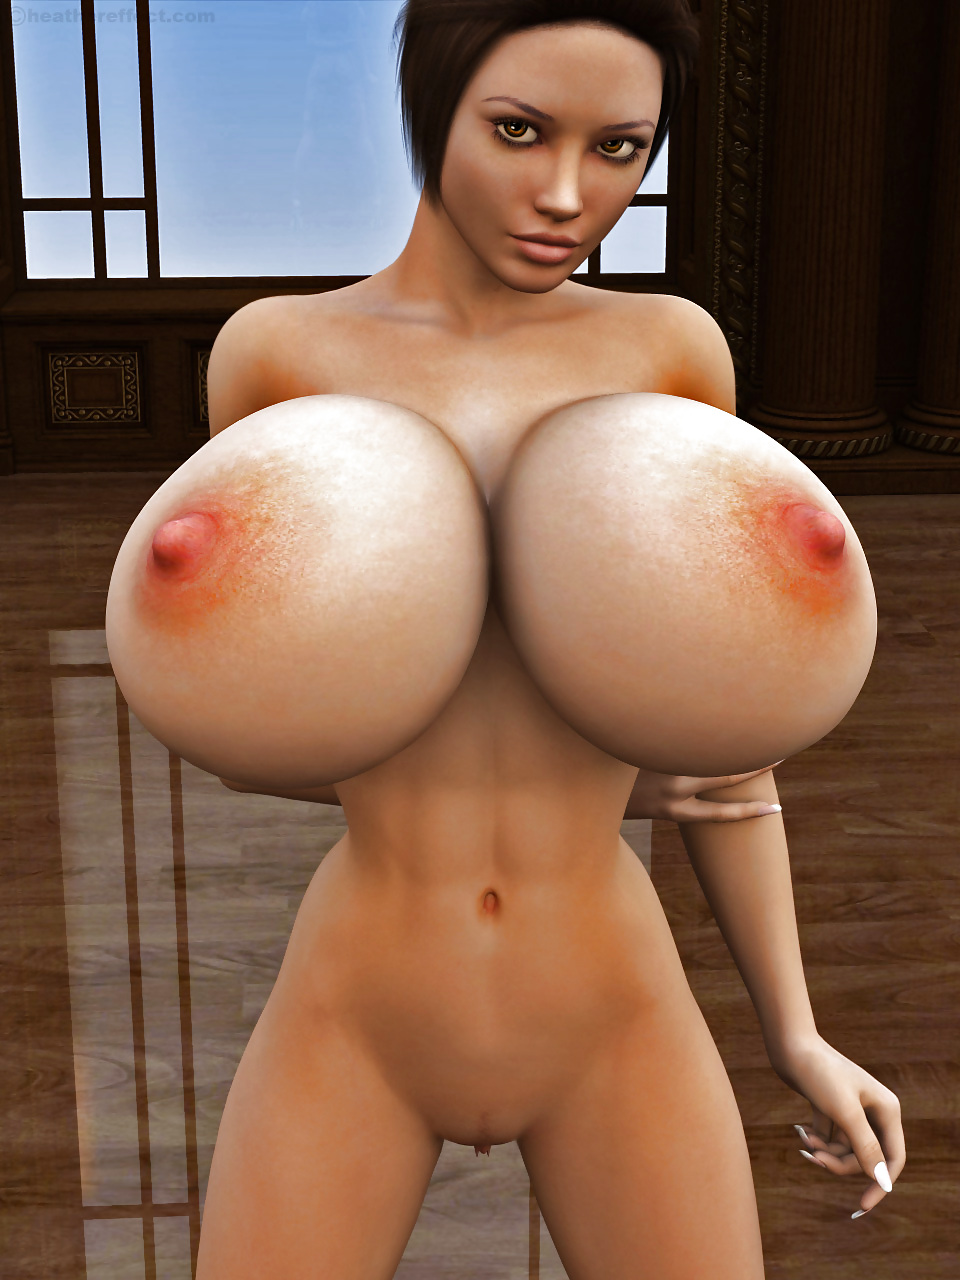 Computer animated big boobs video #2